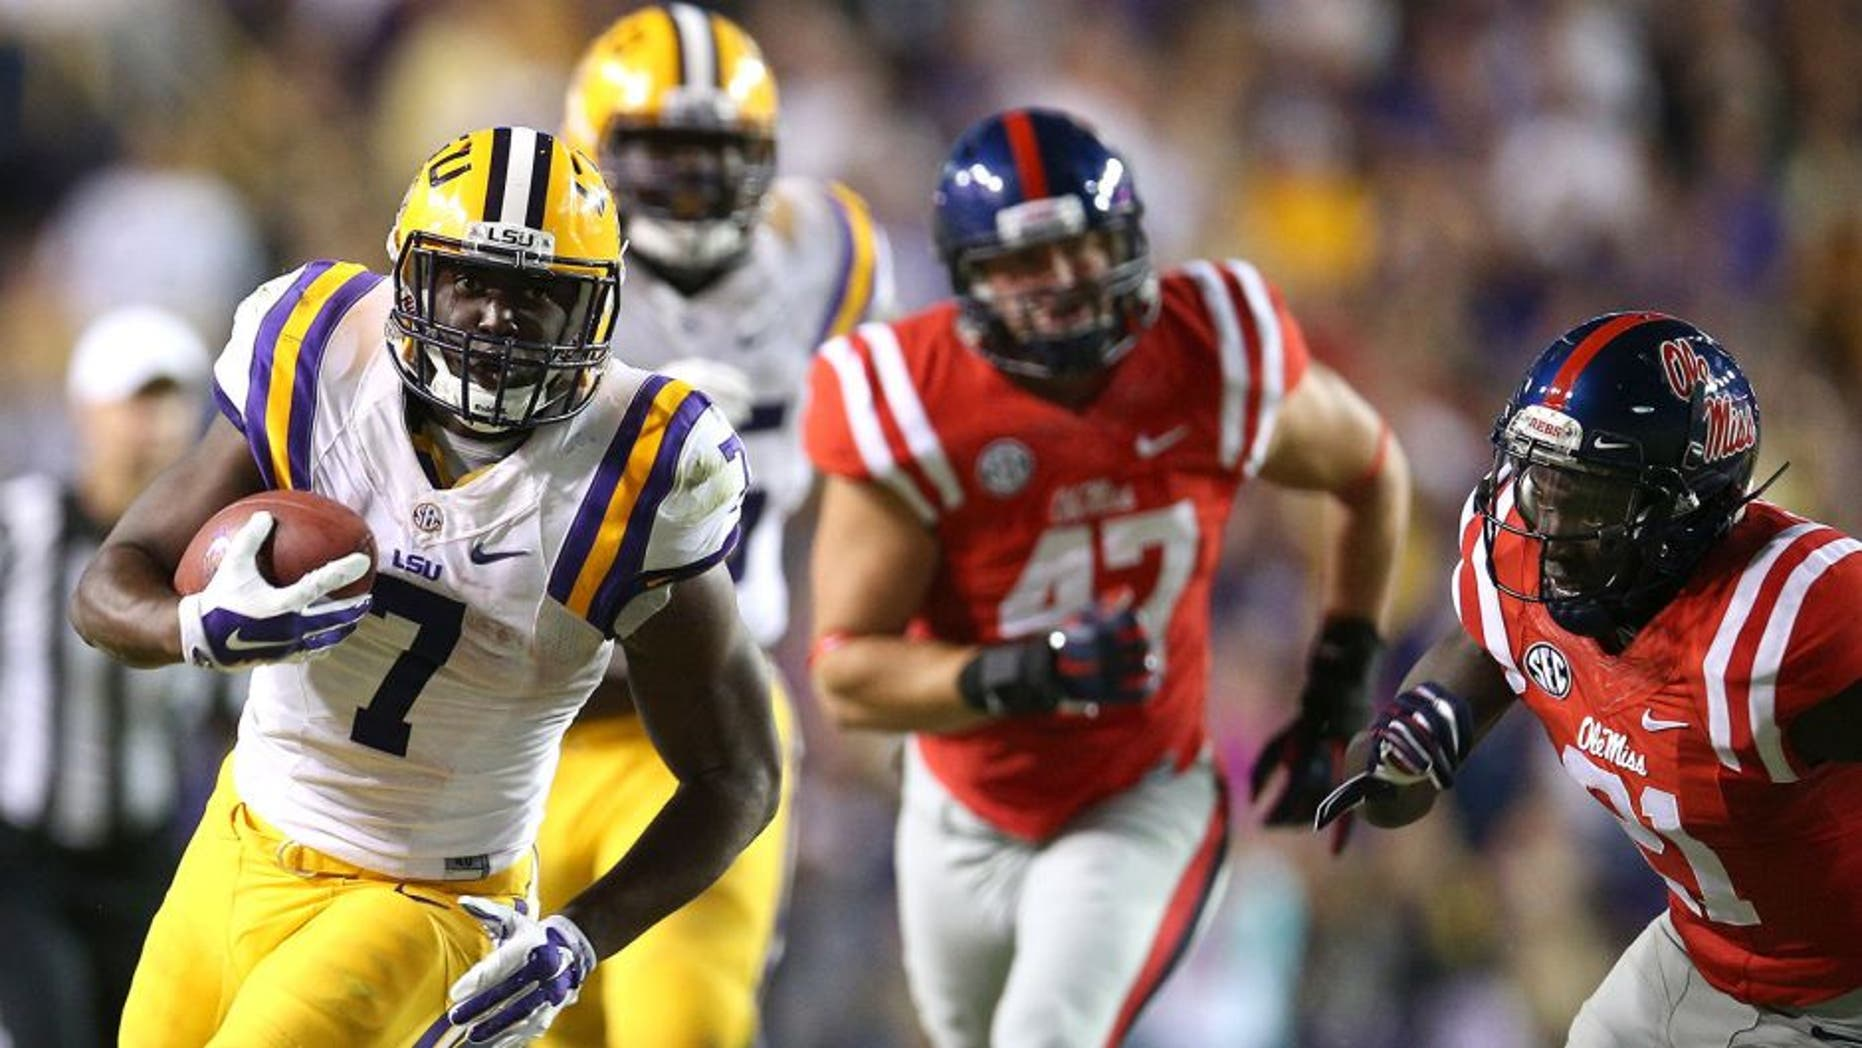 BATON ROUGE, LA - OCTOBER 25: Leonard Fournette #7 of the LSU Tigers runs the ball against the Mississippi Rebels at Tiger Stadium on October 25, 2014 in Baton Rouge, Louisiana. (Photo by Chris Graythen/Getty Images)